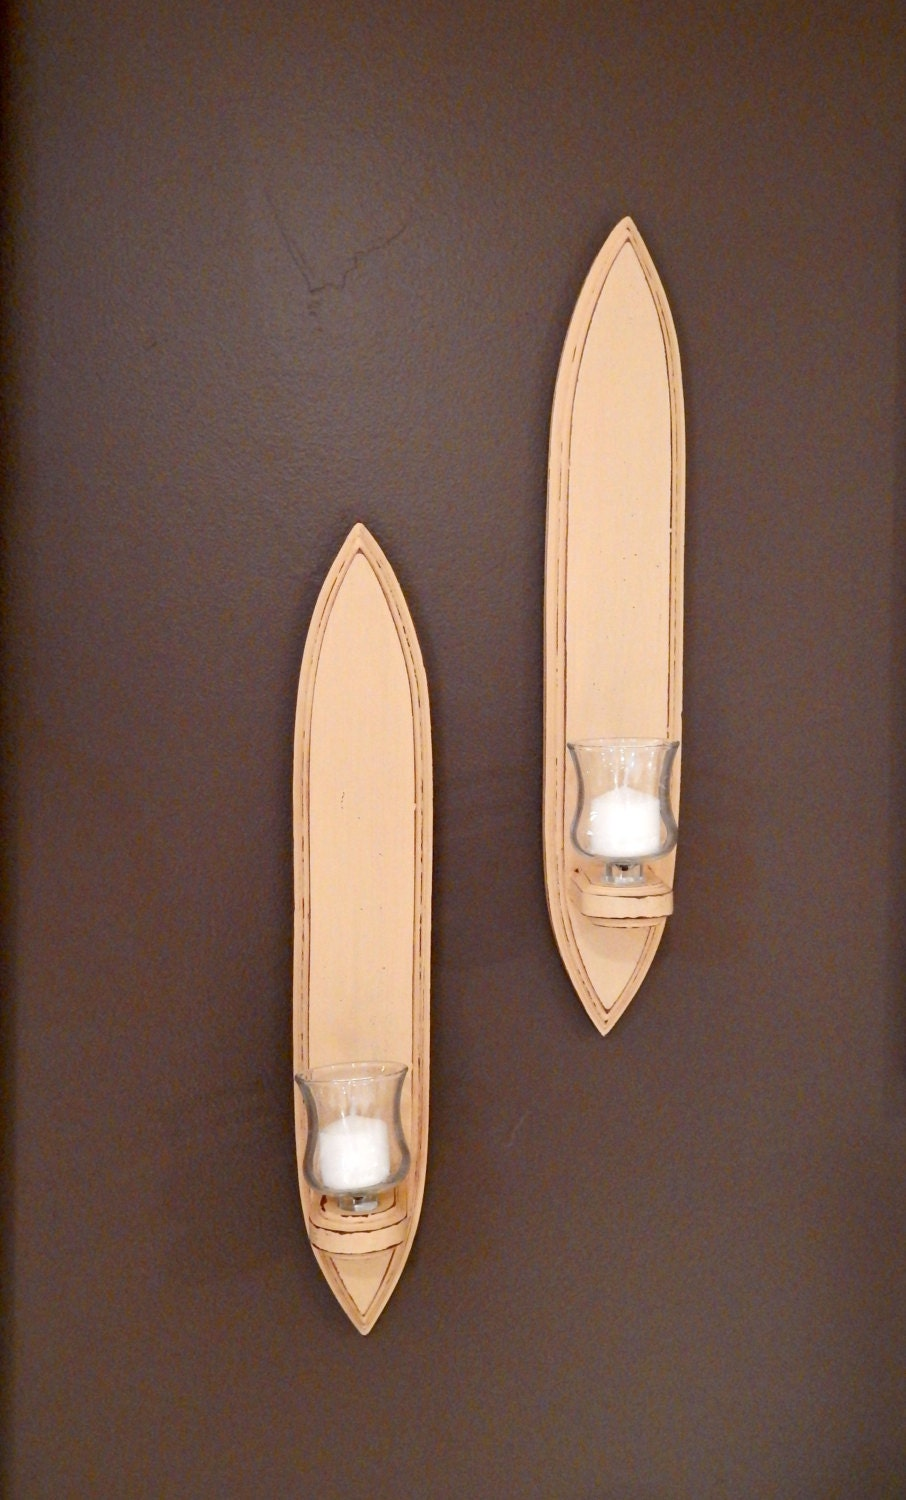 Wood And Glass Candle Wall Sconces : Wall Sconces wood glass votives candles by TheRepaintedHouse